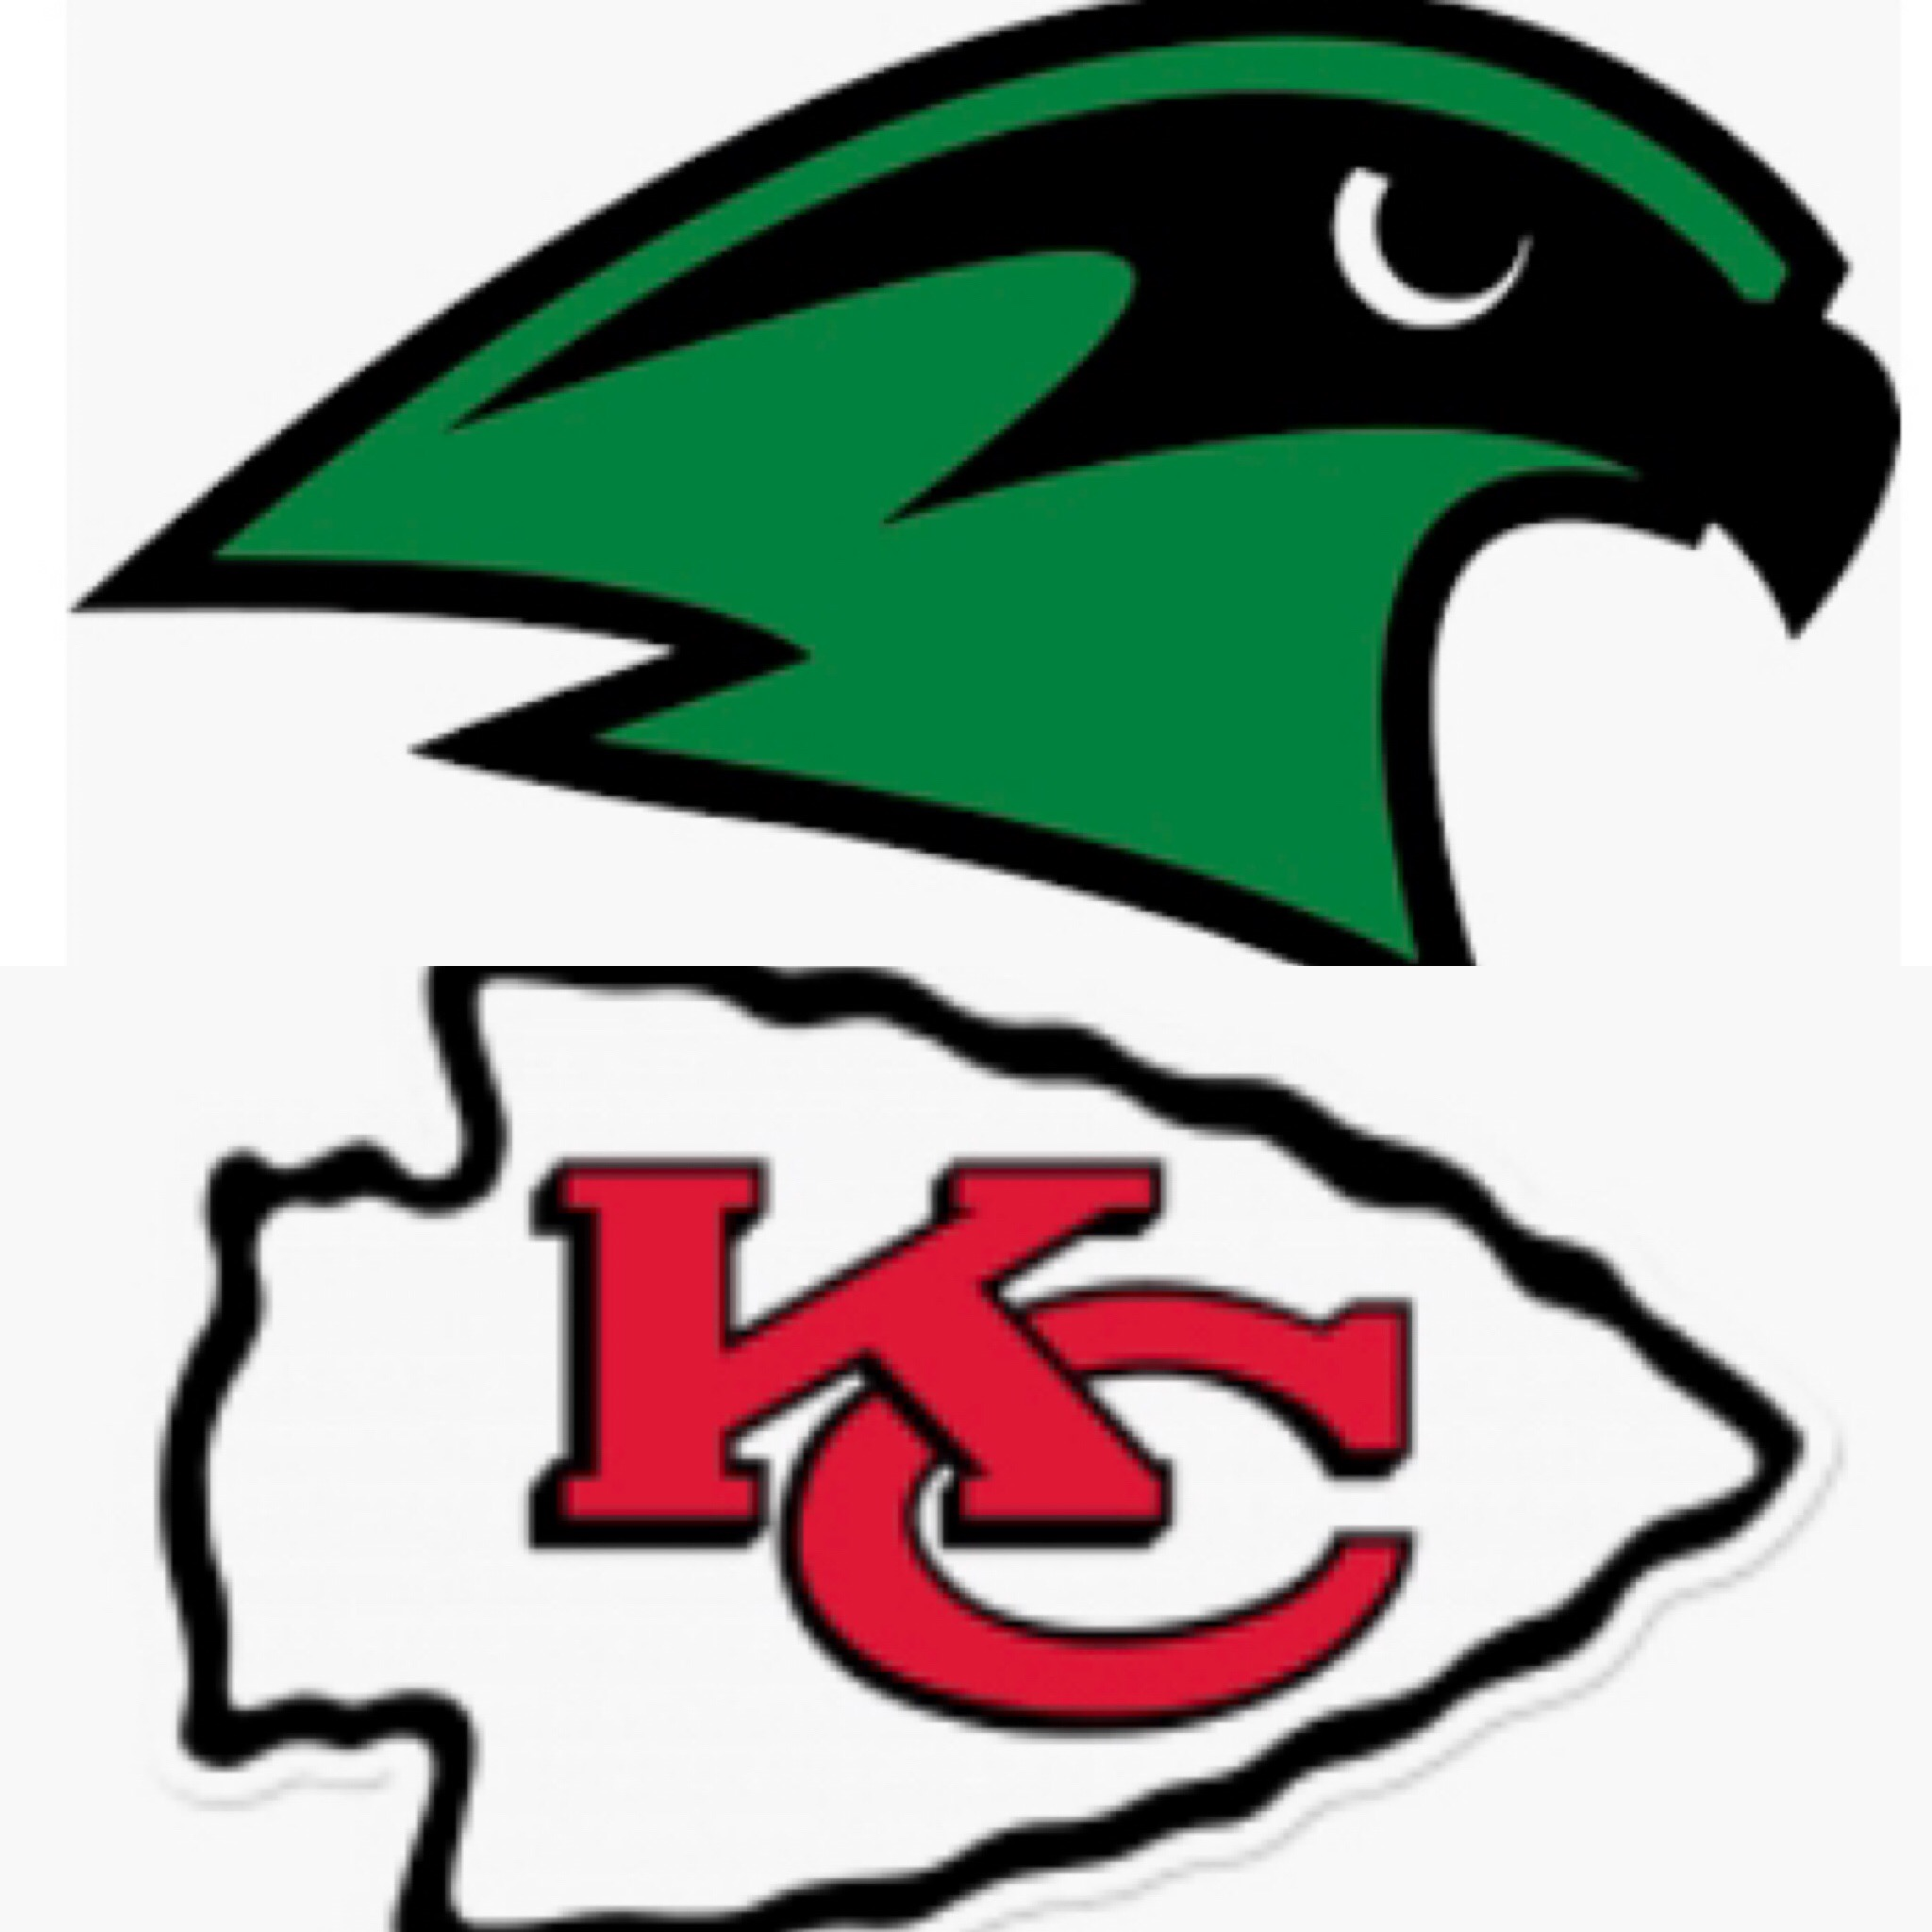 JOIN STALEY FOOTBALL AT ARROWHEAD FOR CHIEFS/RAVENS ON DEC. 9!